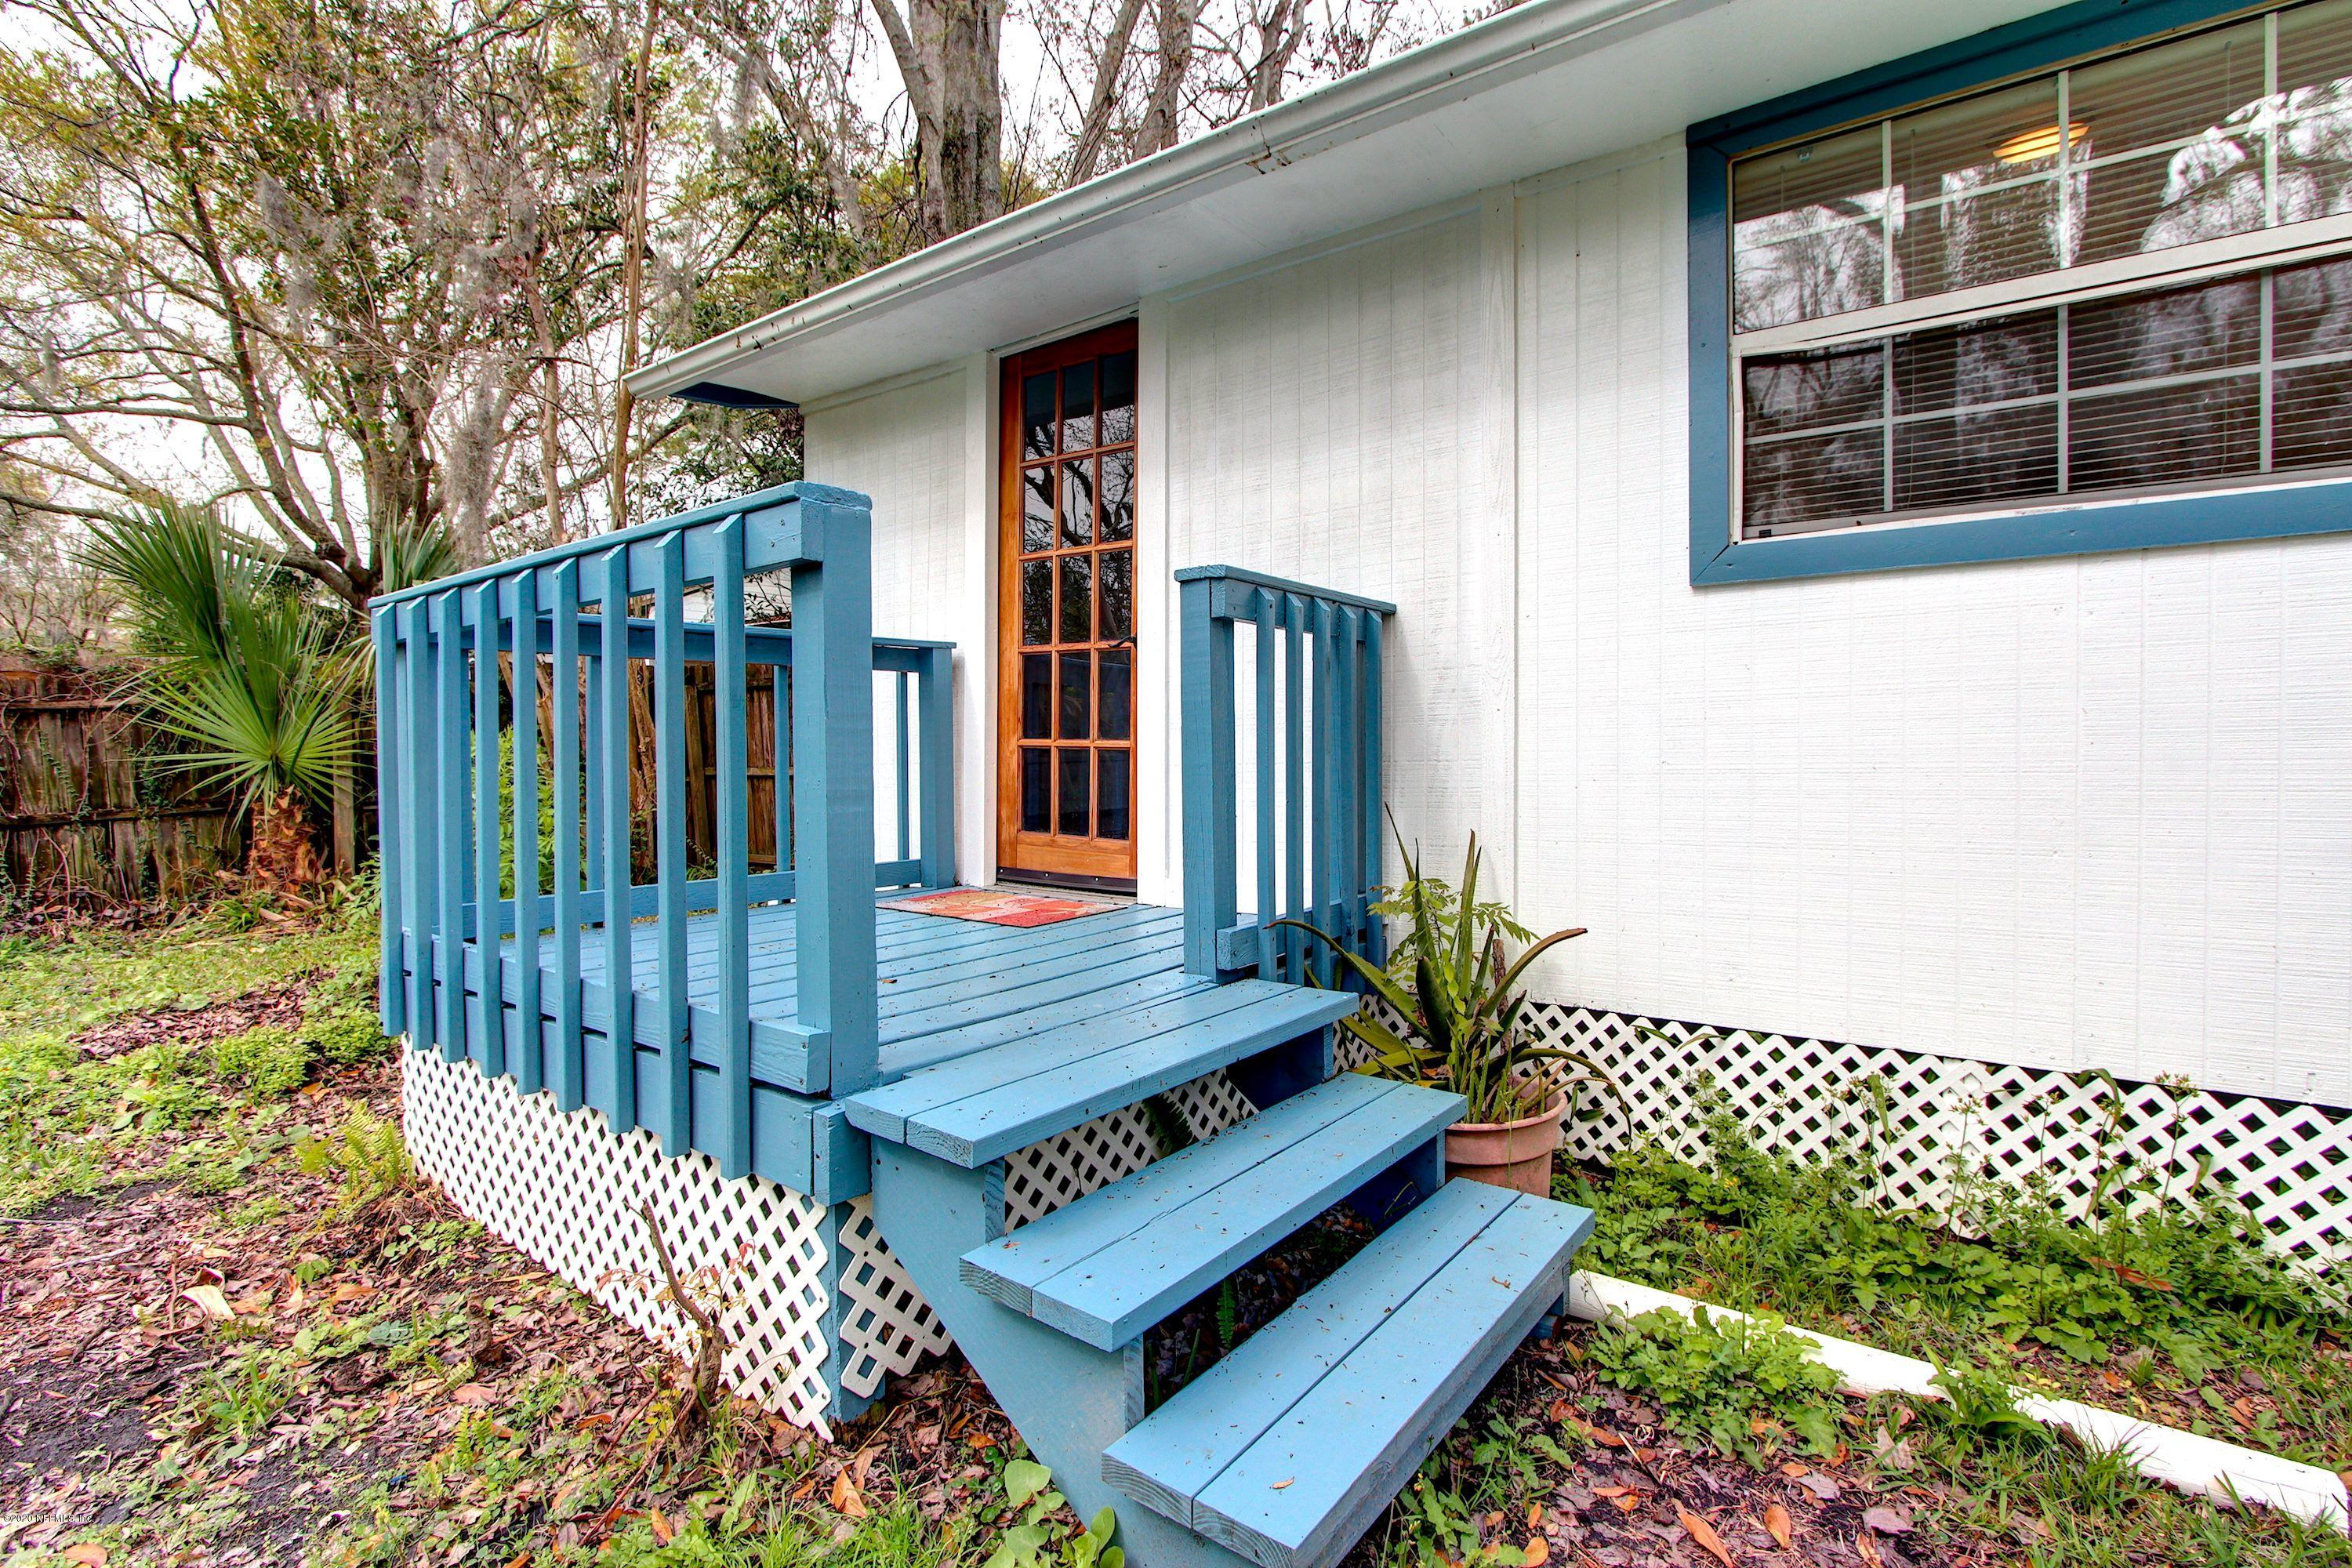 4844 PALMER, JACKSONVILLE, FLORIDA 32210, 3 Bedrooms Bedrooms, ,1 BathroomBathrooms,Residential,For sale,PALMER,1081873